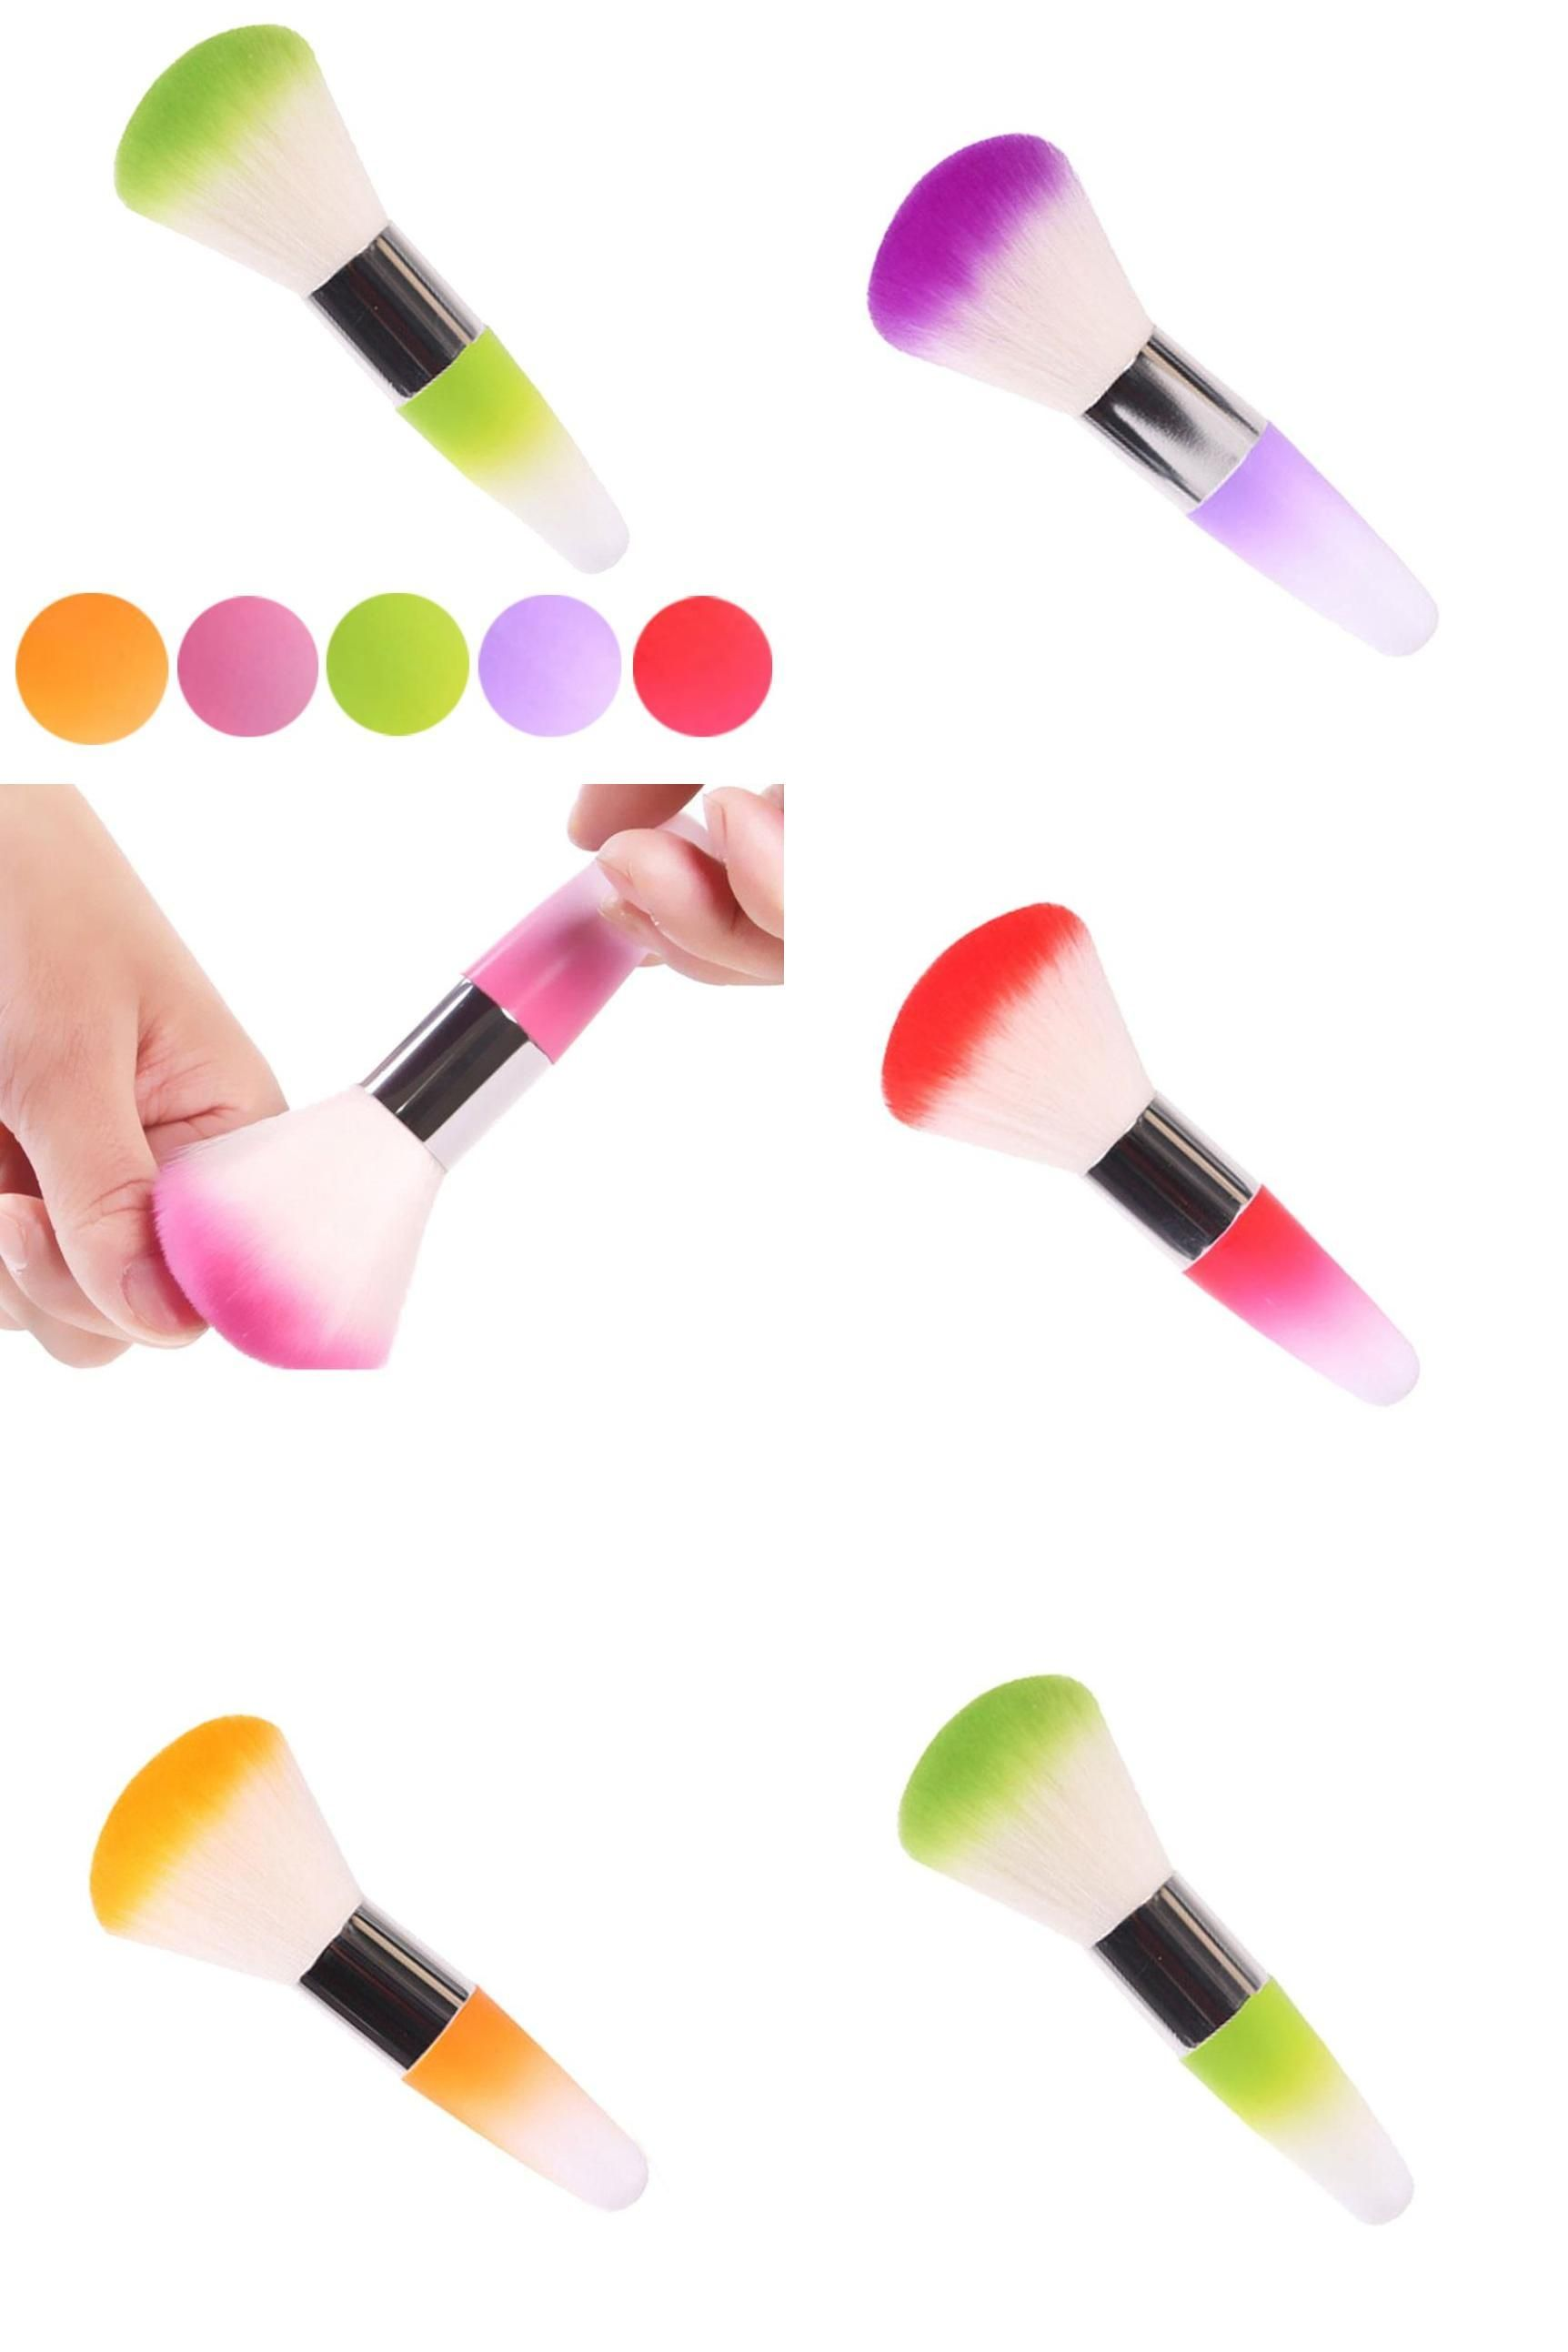 How To Clean Acrylic Nail Brushes : clean, acrylic, brushes, Visit, Legal, Brush, Remove, Powder, Acrylic, Nails, Clean, #Advertisement, Brush,, Nails,, Brushes